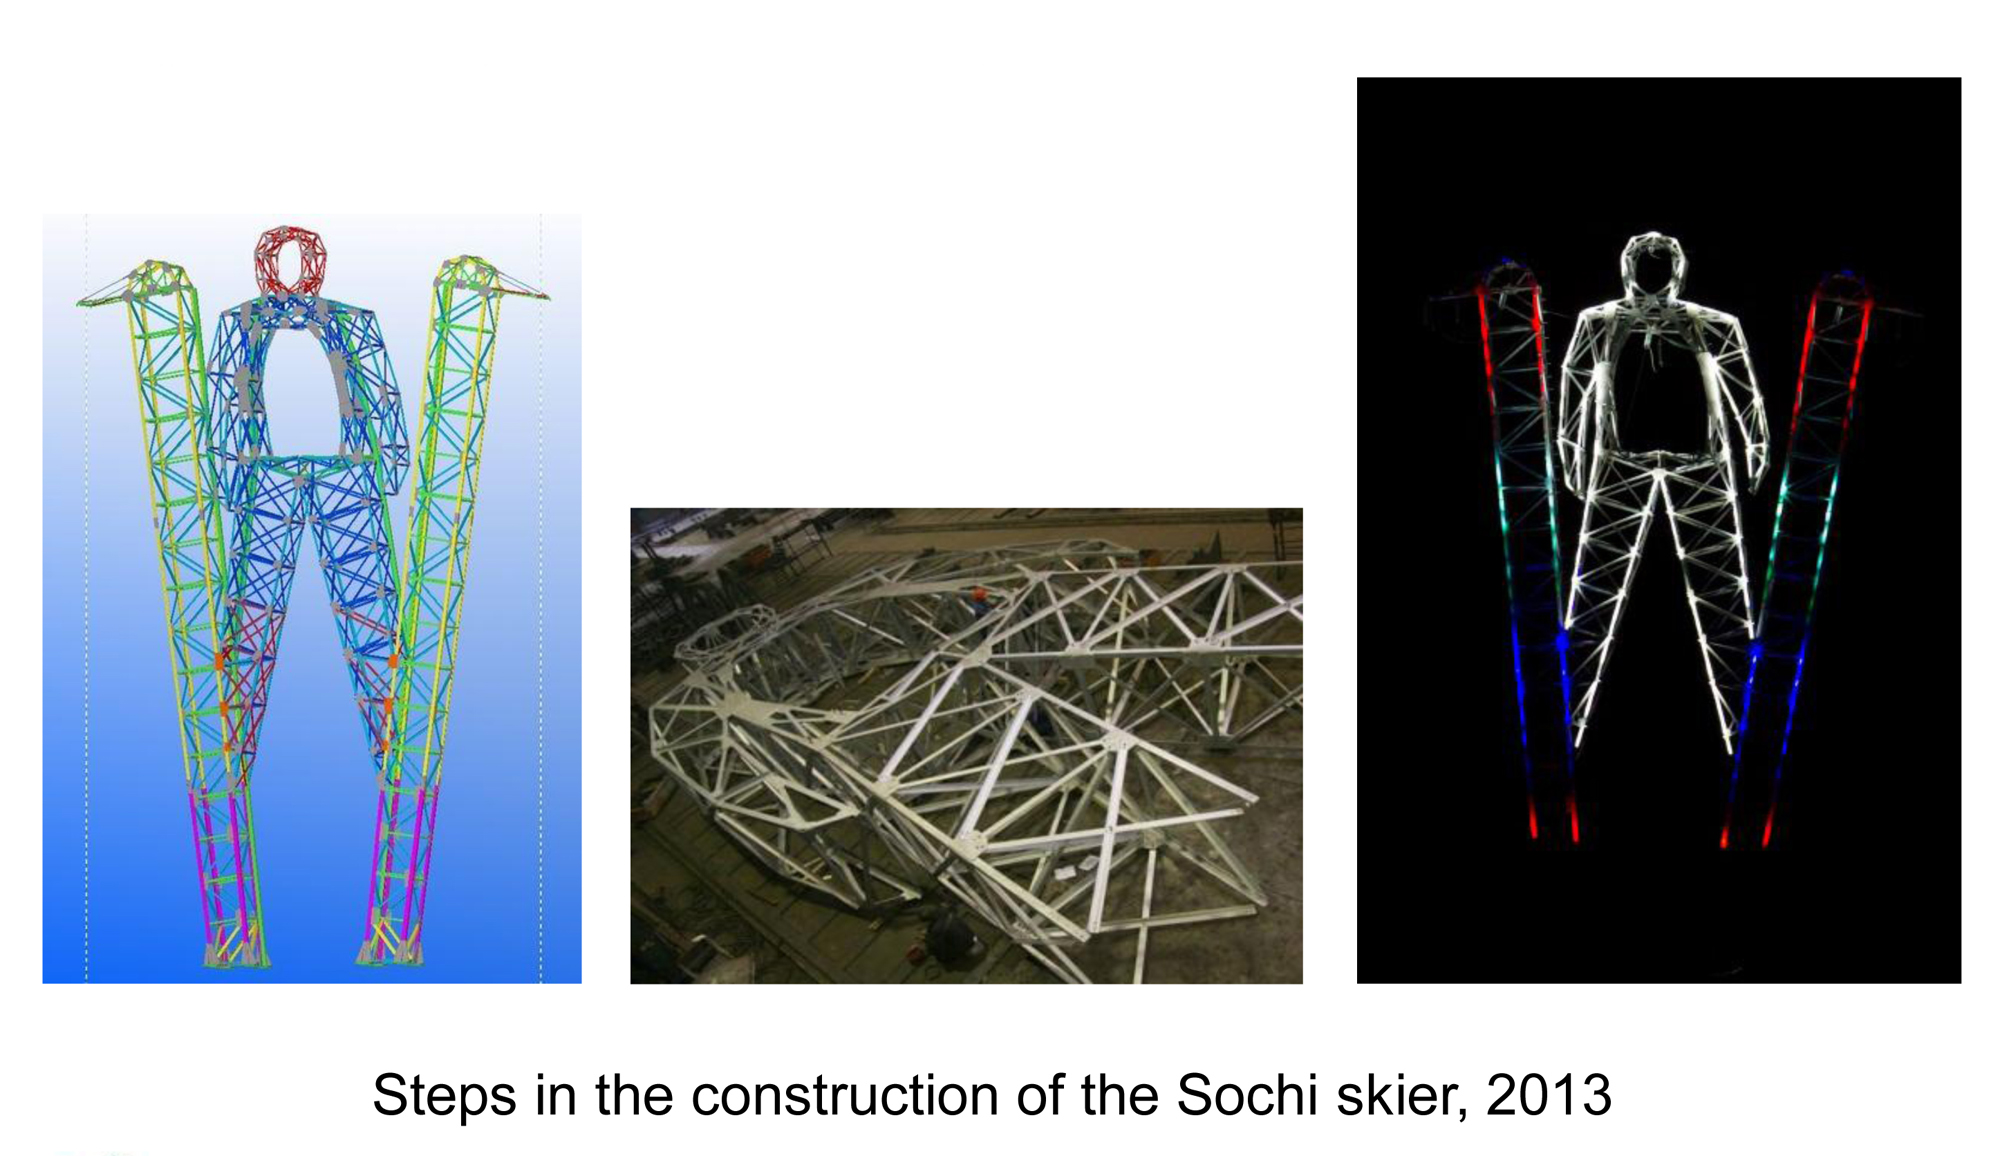 steps in the construction of the Sochi Skier (Russia)